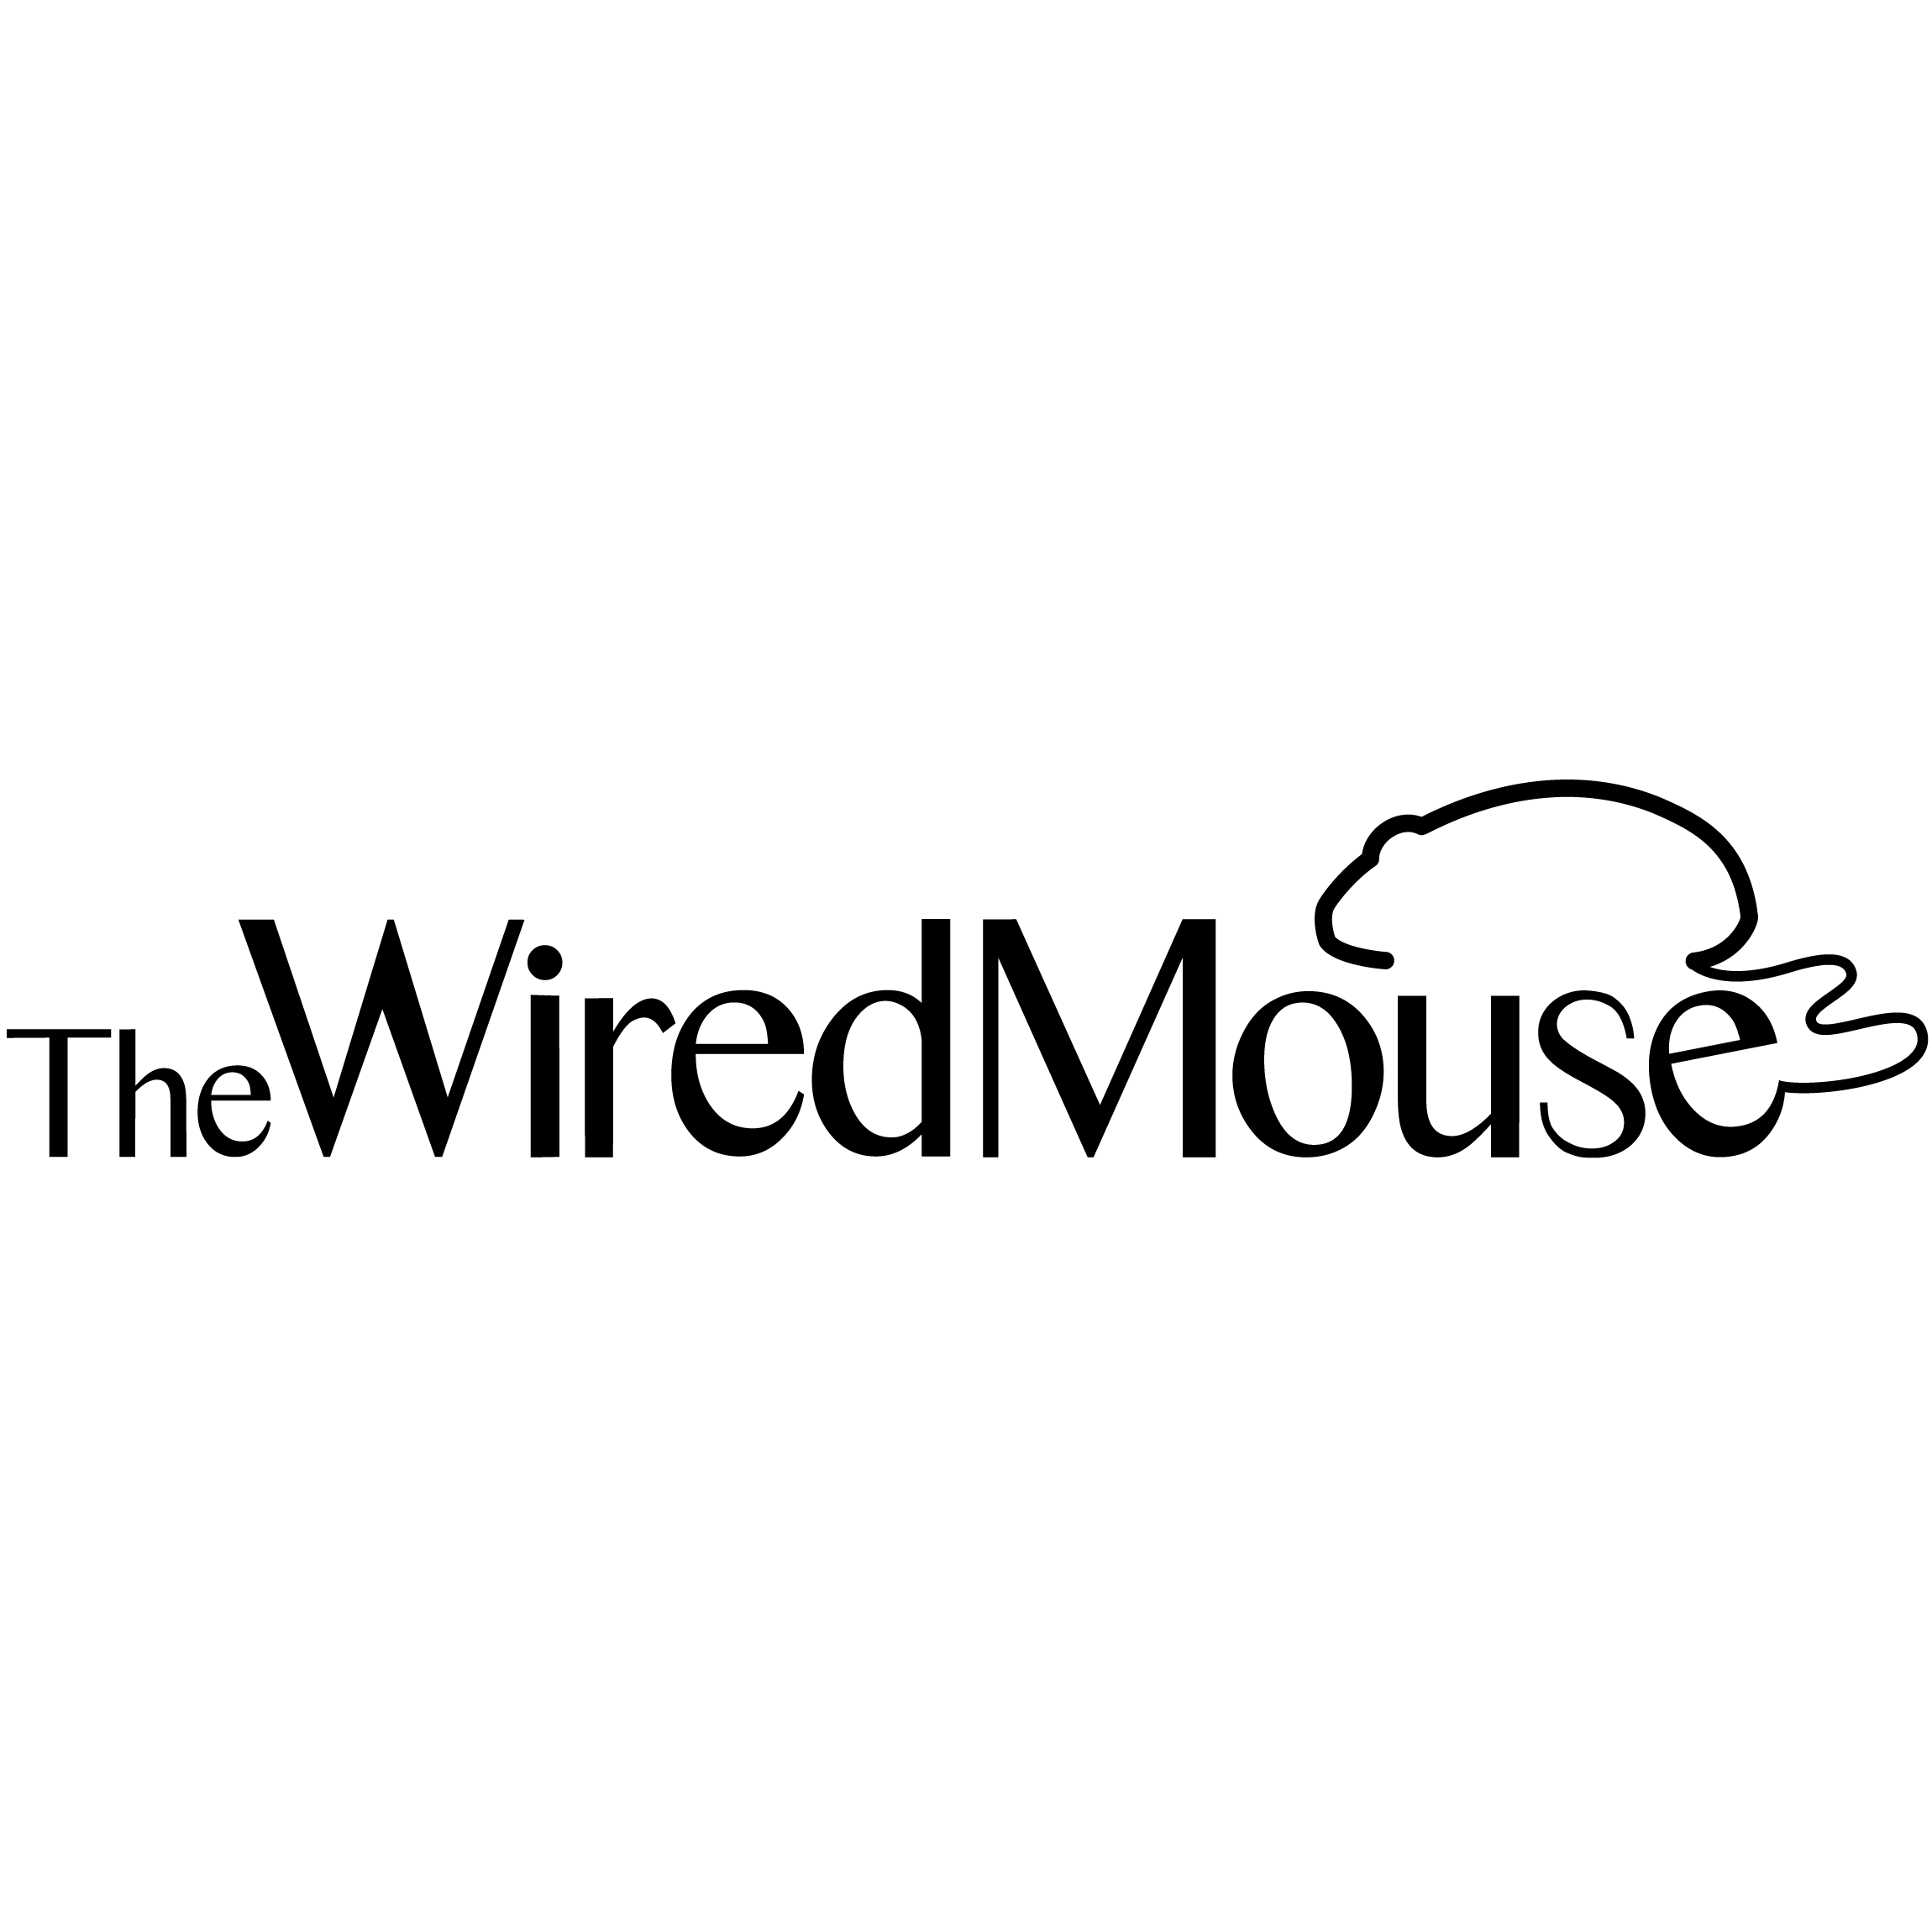 The Wired Mouse